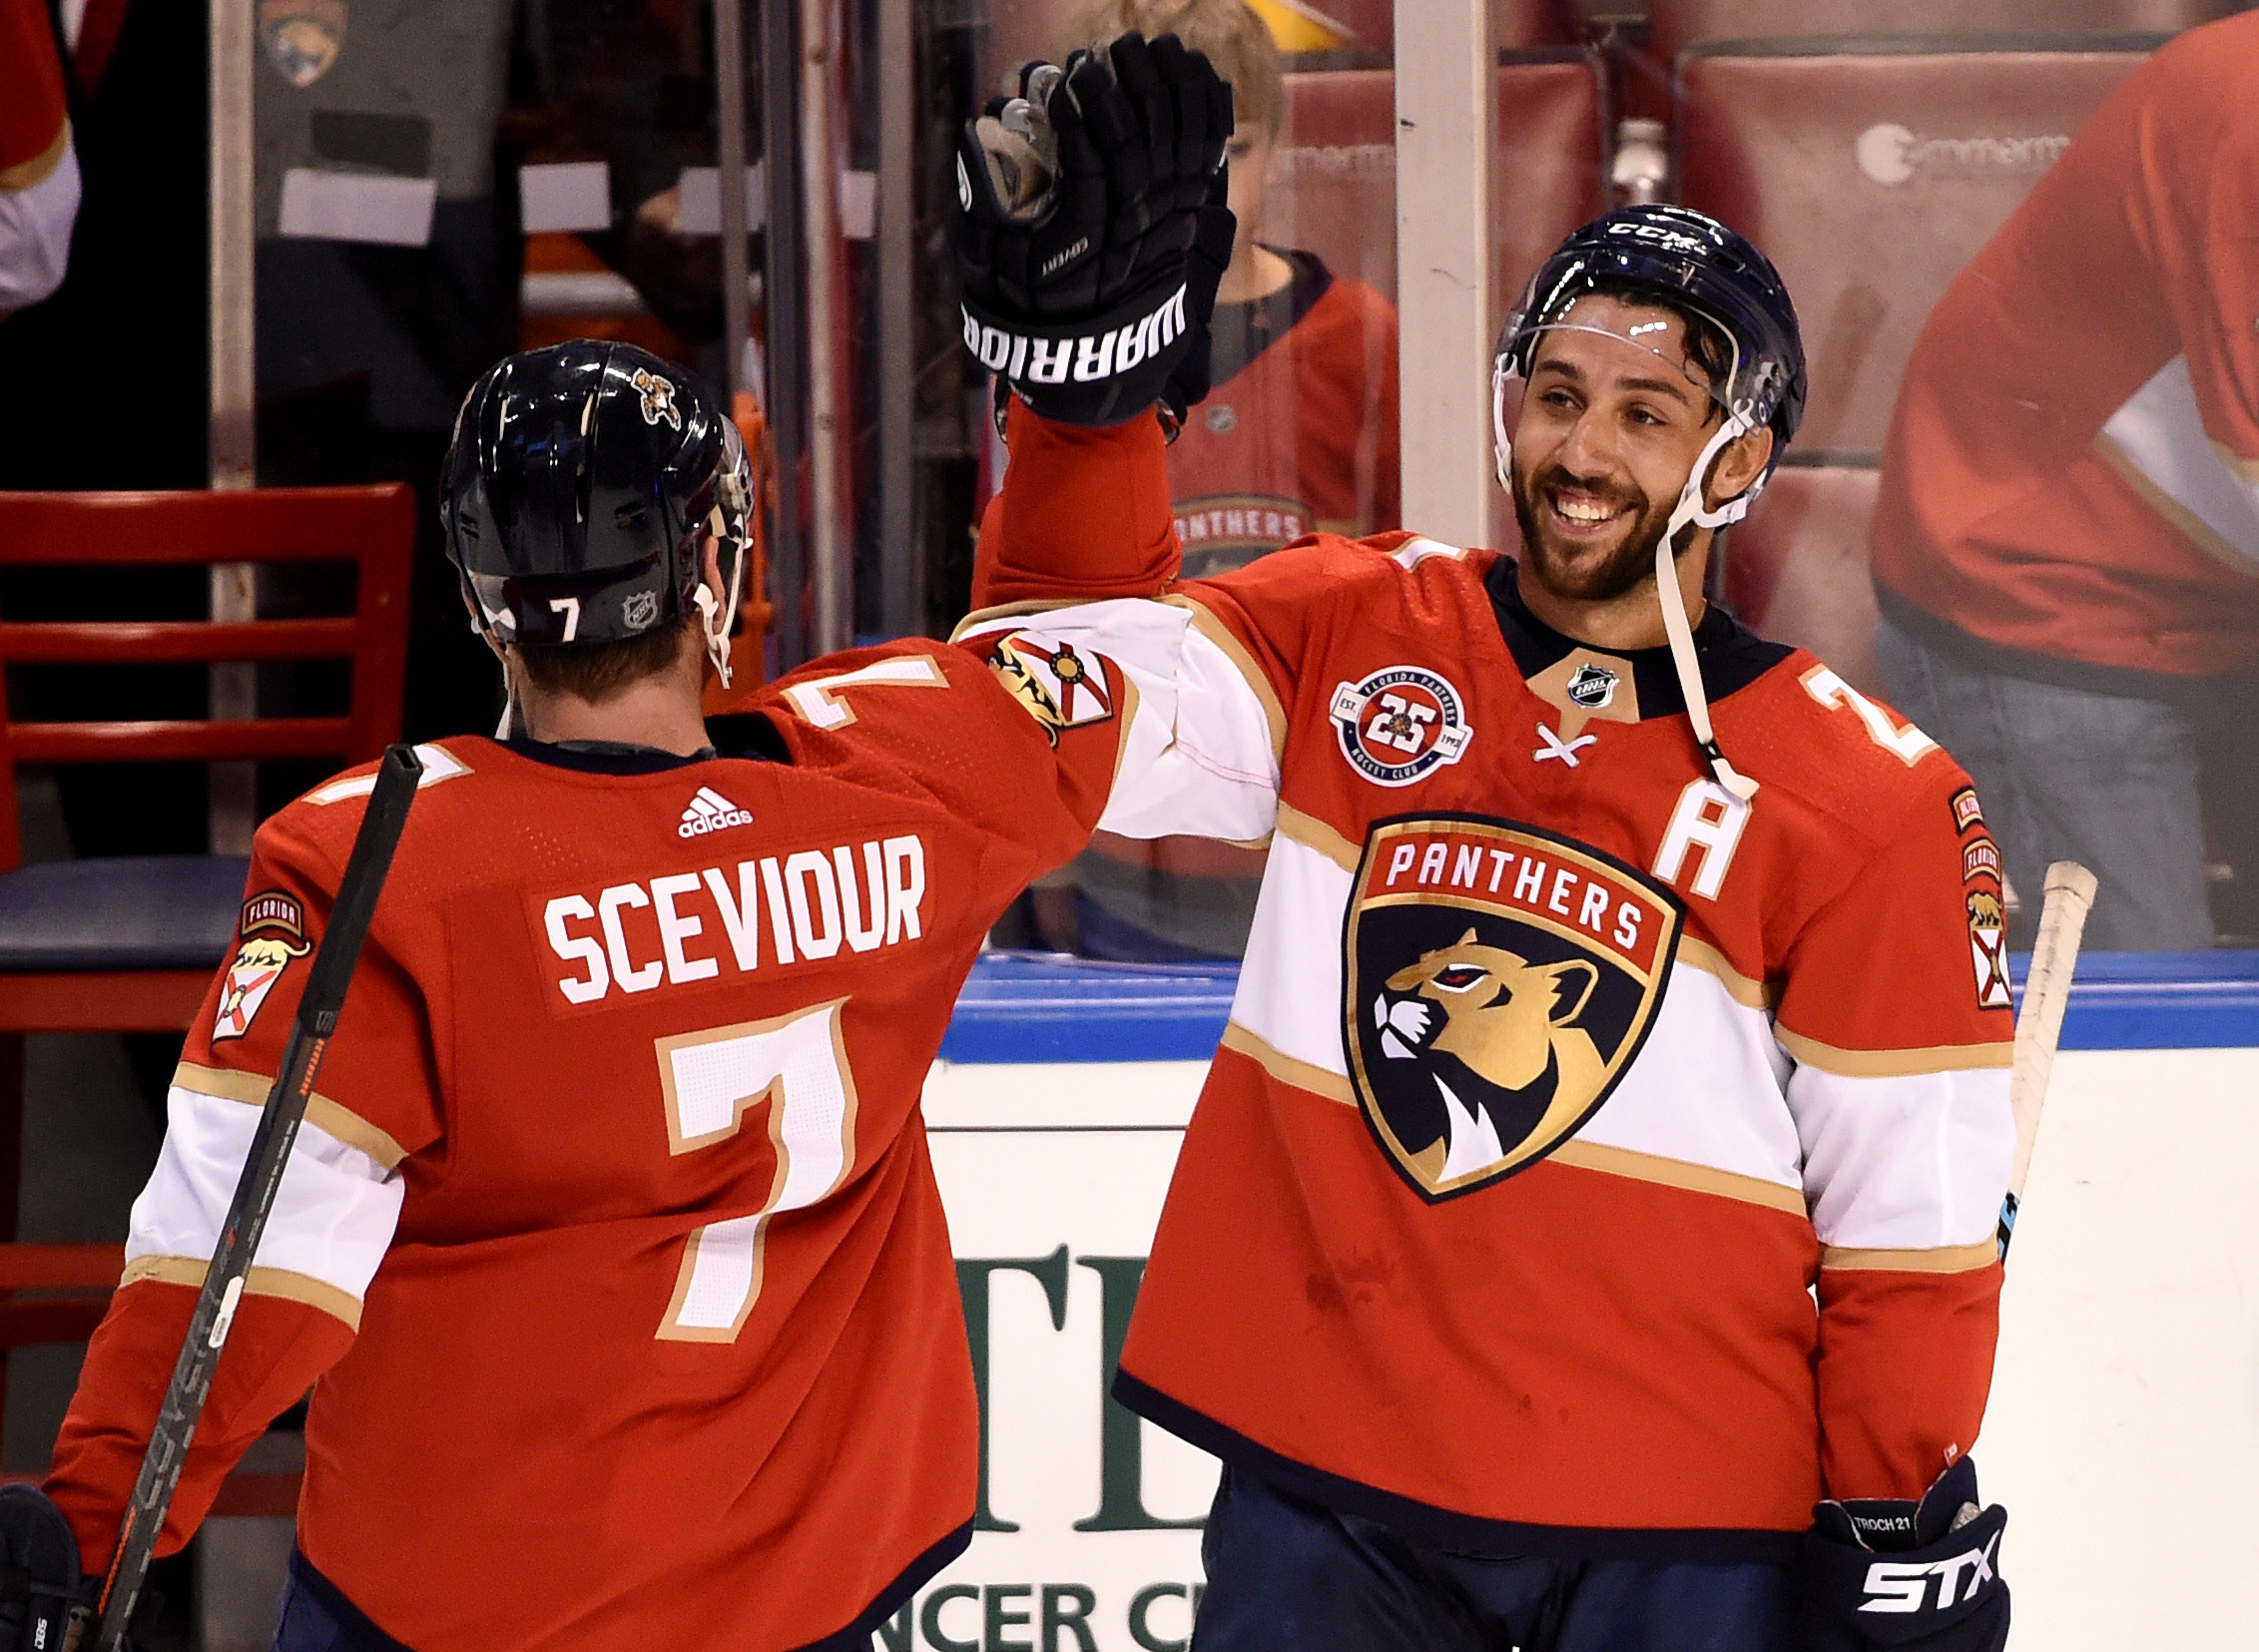 ec3b330533e Recap  Panthers snap skid with stifling 3-1 victory over Maple Leafs ...